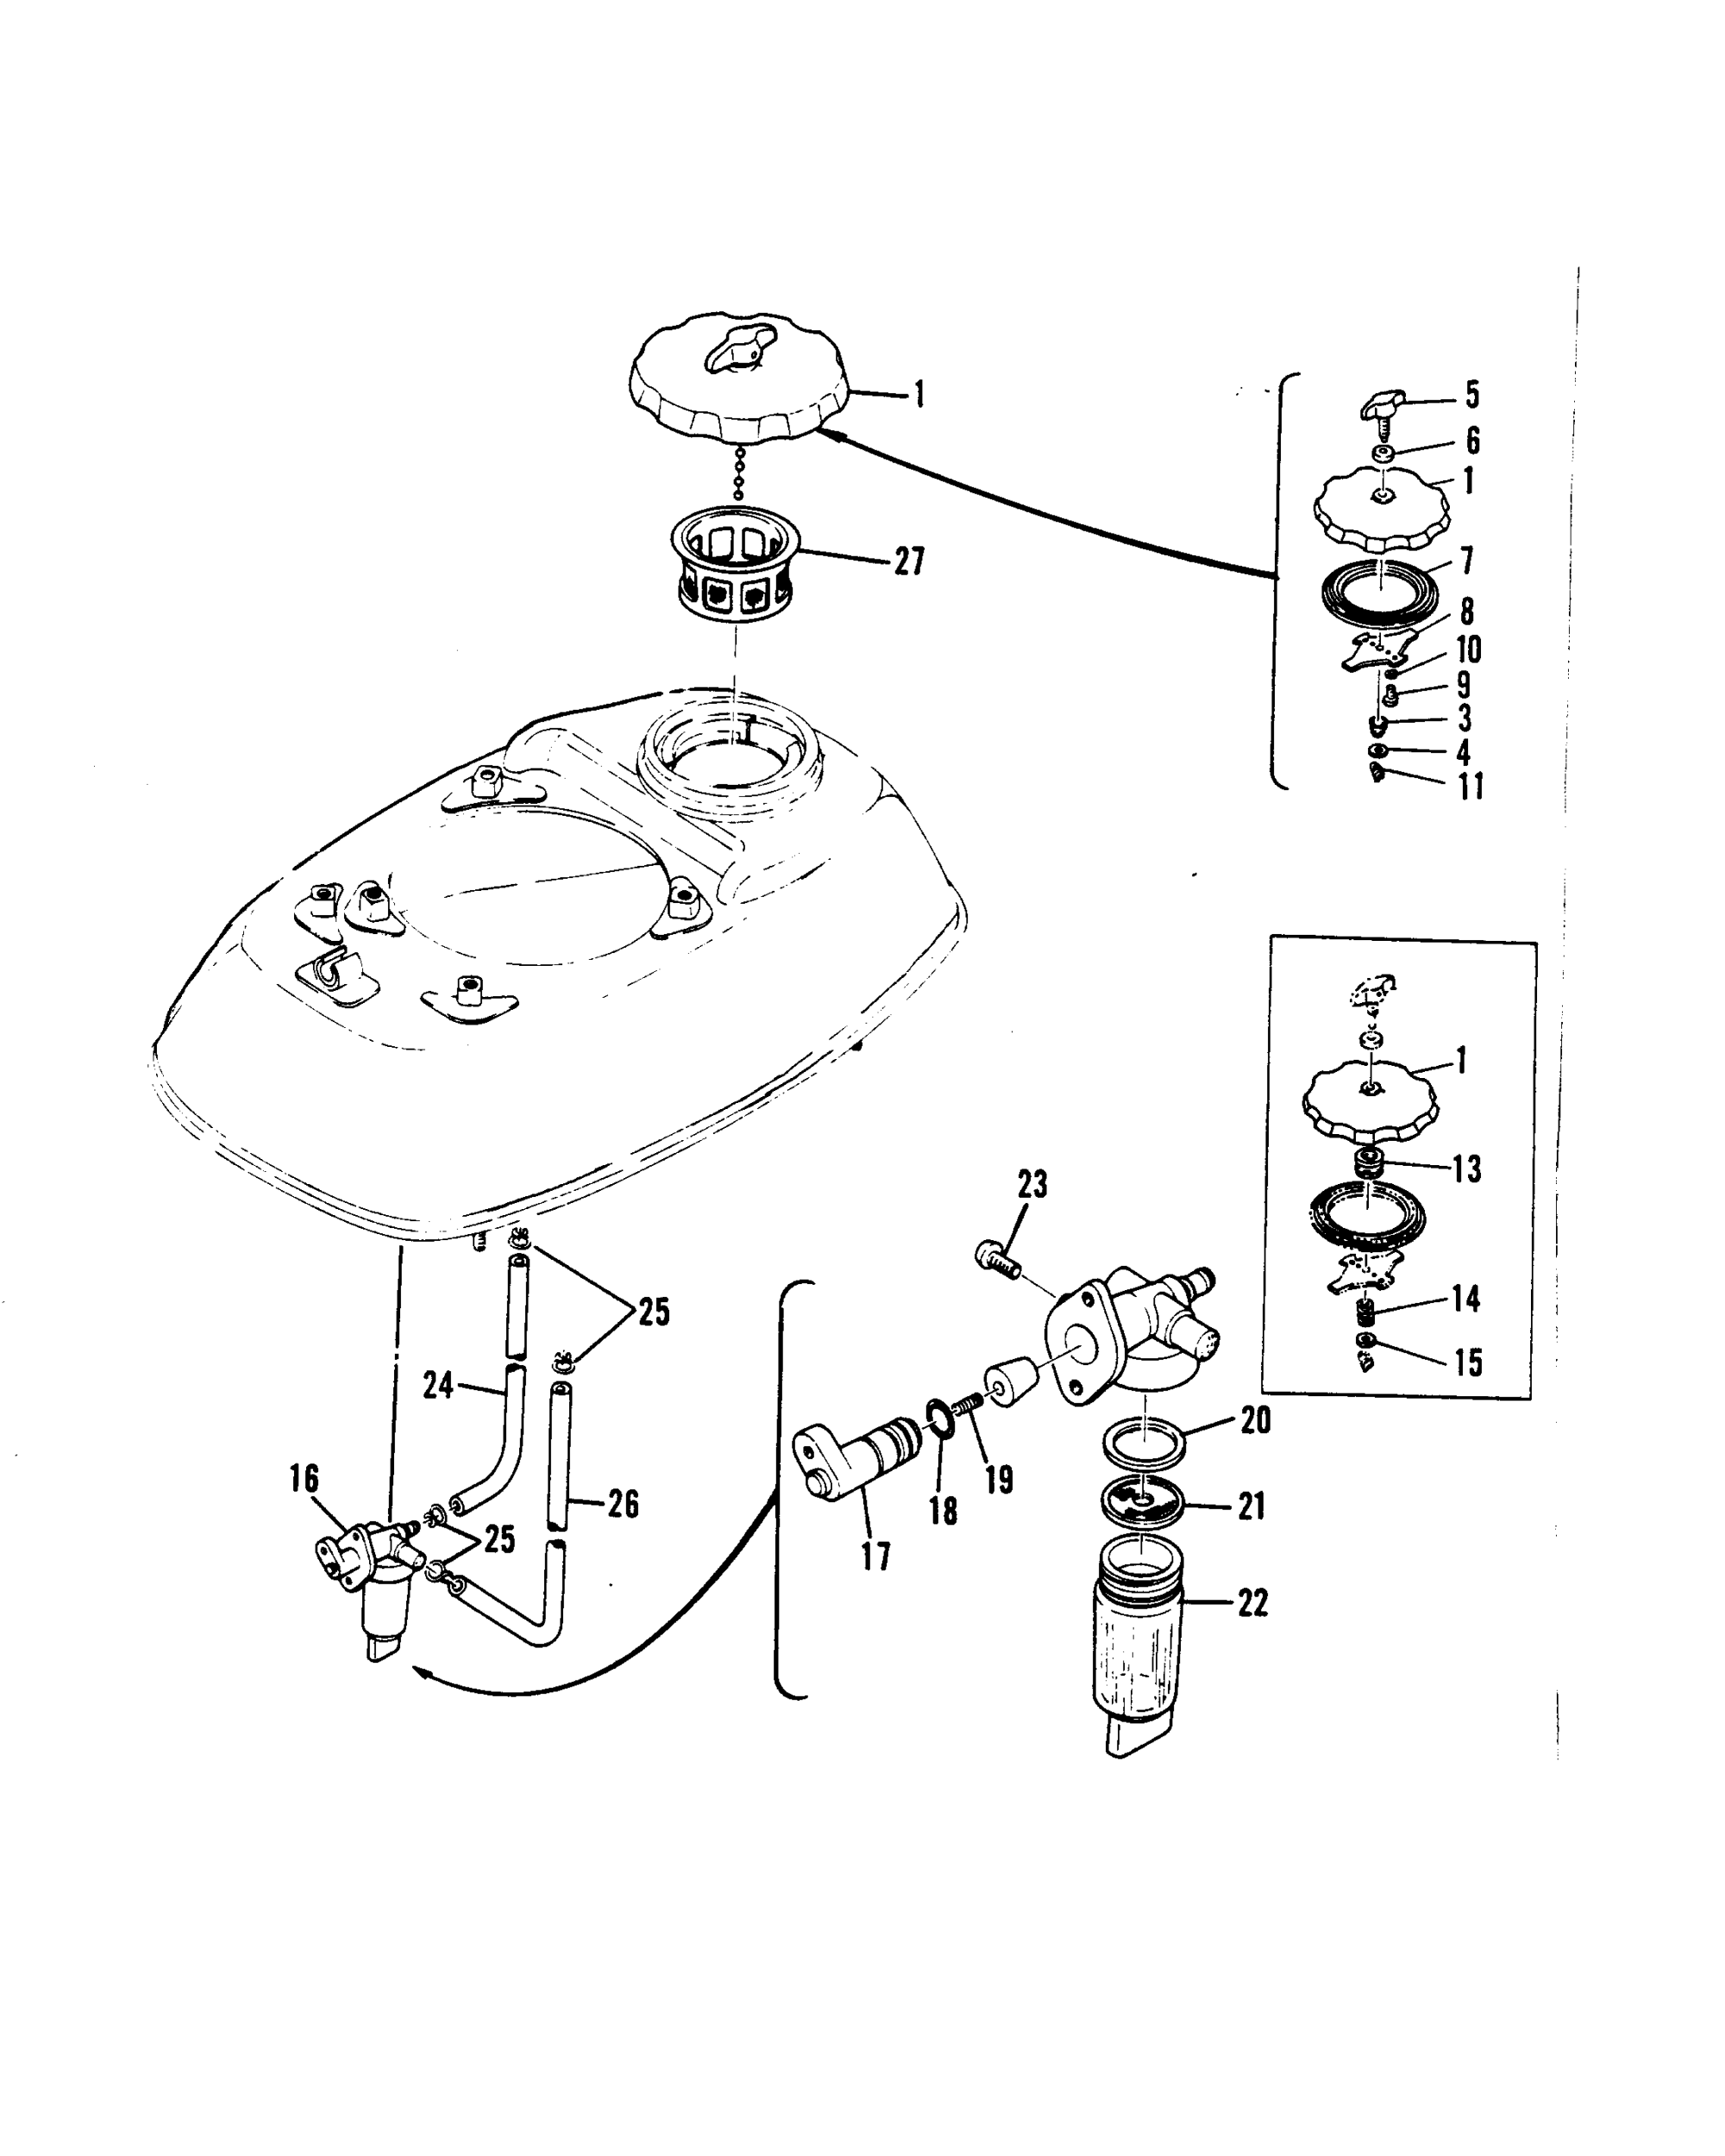 hight resolution of mercury mariner 3 5 642 23740 and below fuel tank cap and fuel filter